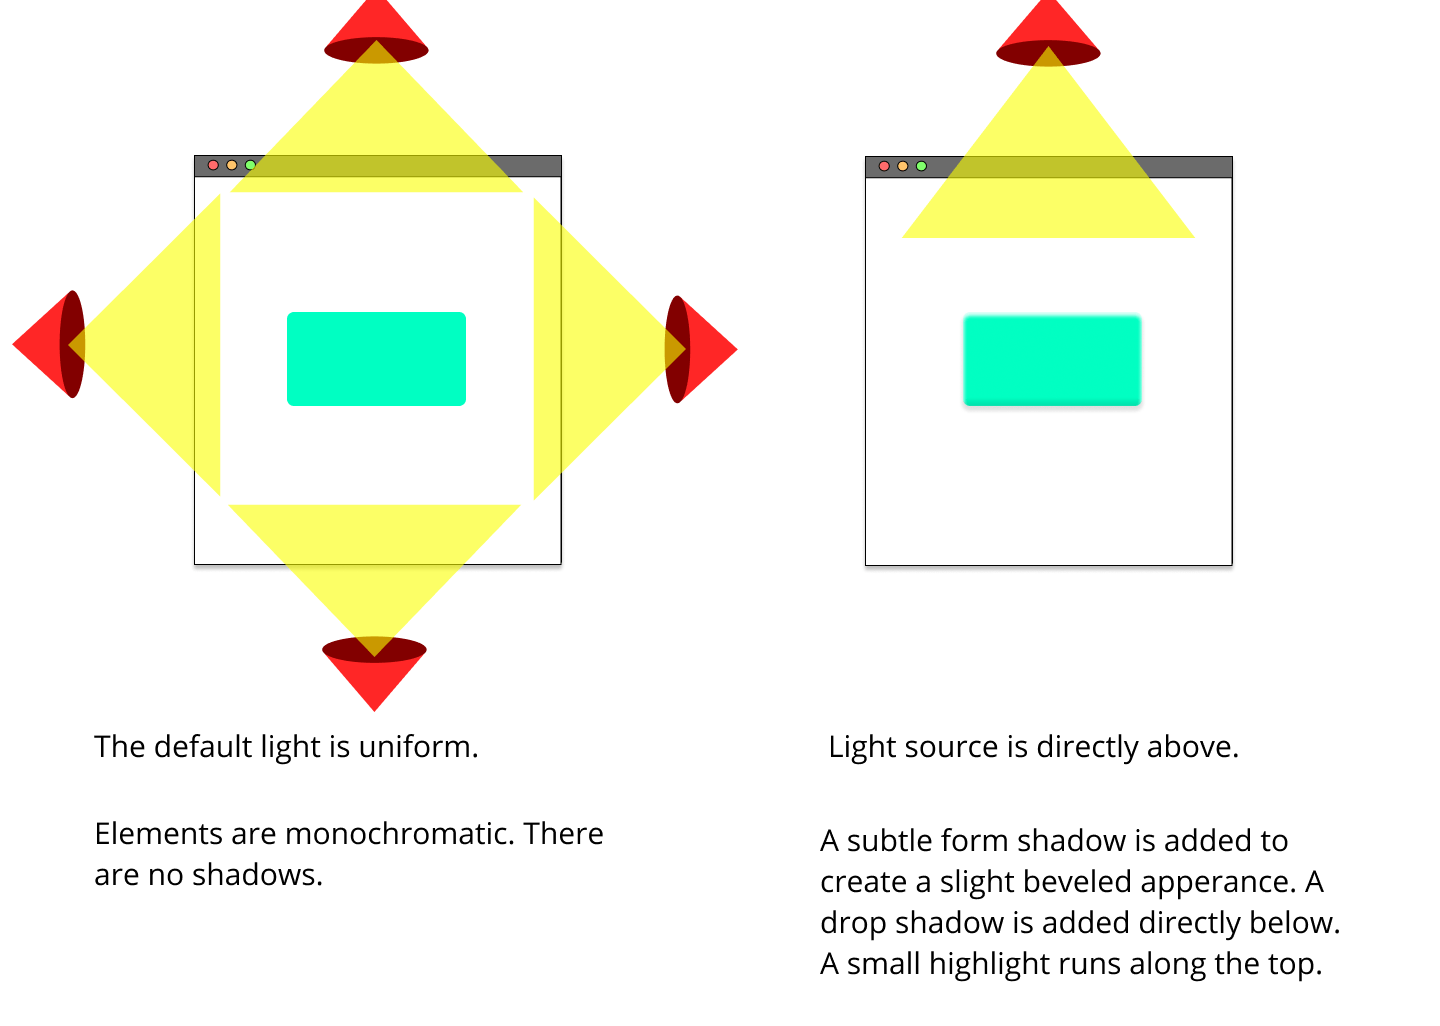 Showing two browser mockups side by side. The left has light shining on it from all four directions showing uniform light and no shadows. The right has a single light source from the top casting a shadow along the bottom edge.